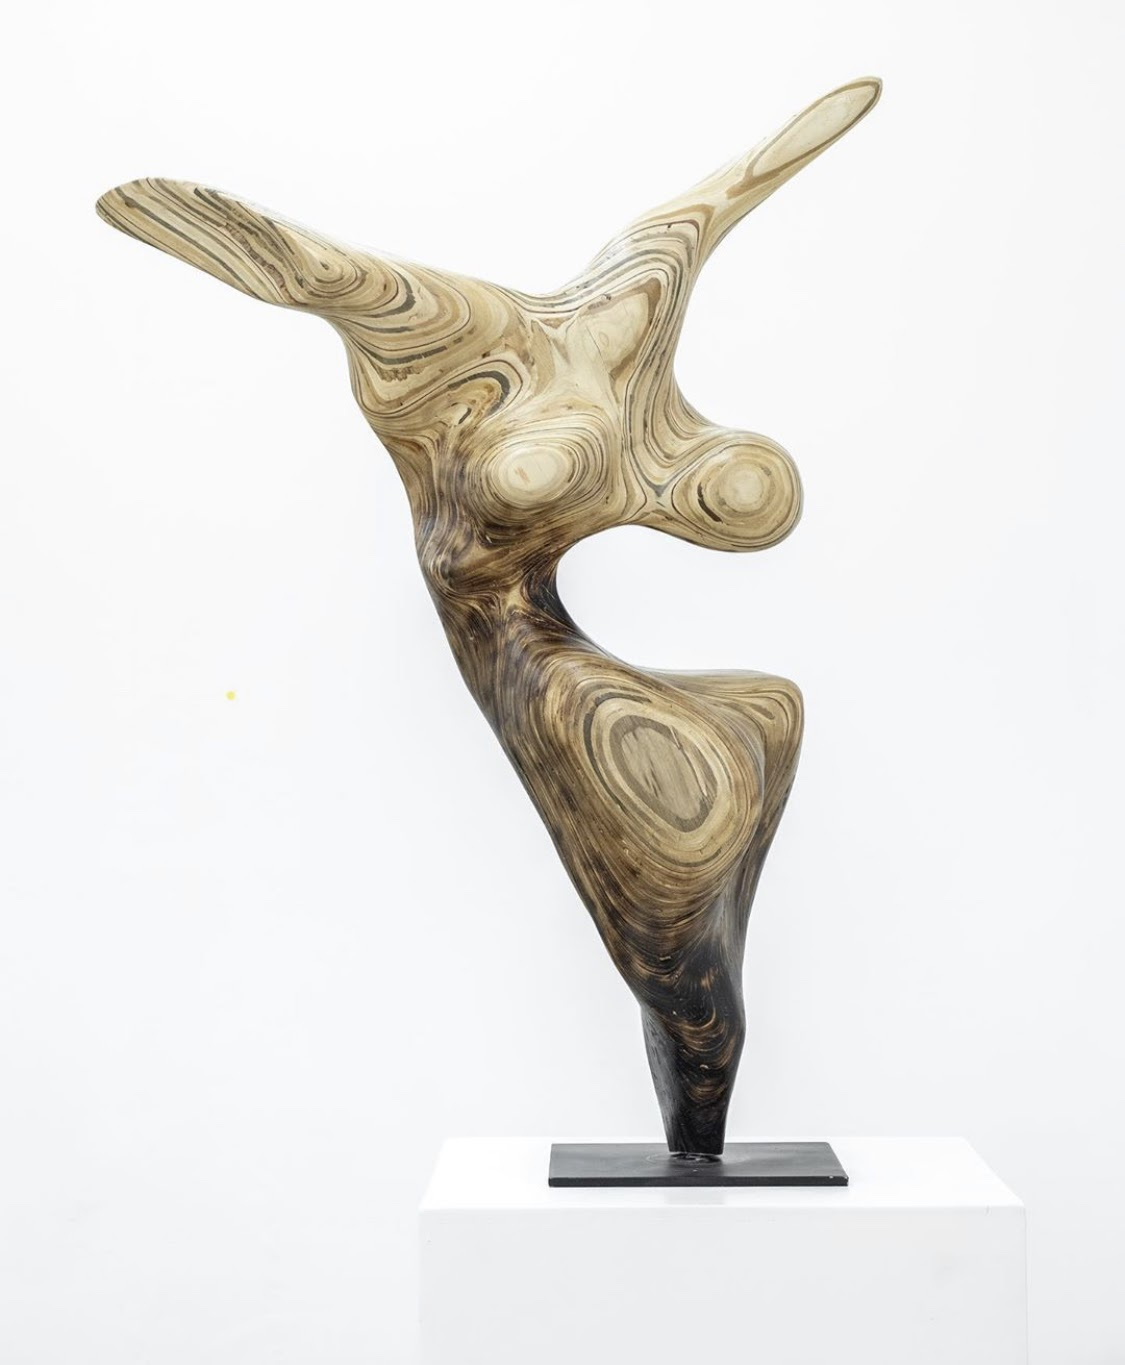 Sculpture made from wood that has two appendages out from it that look like arms and its form encapsulates the artists' intention and namesake--freedom.